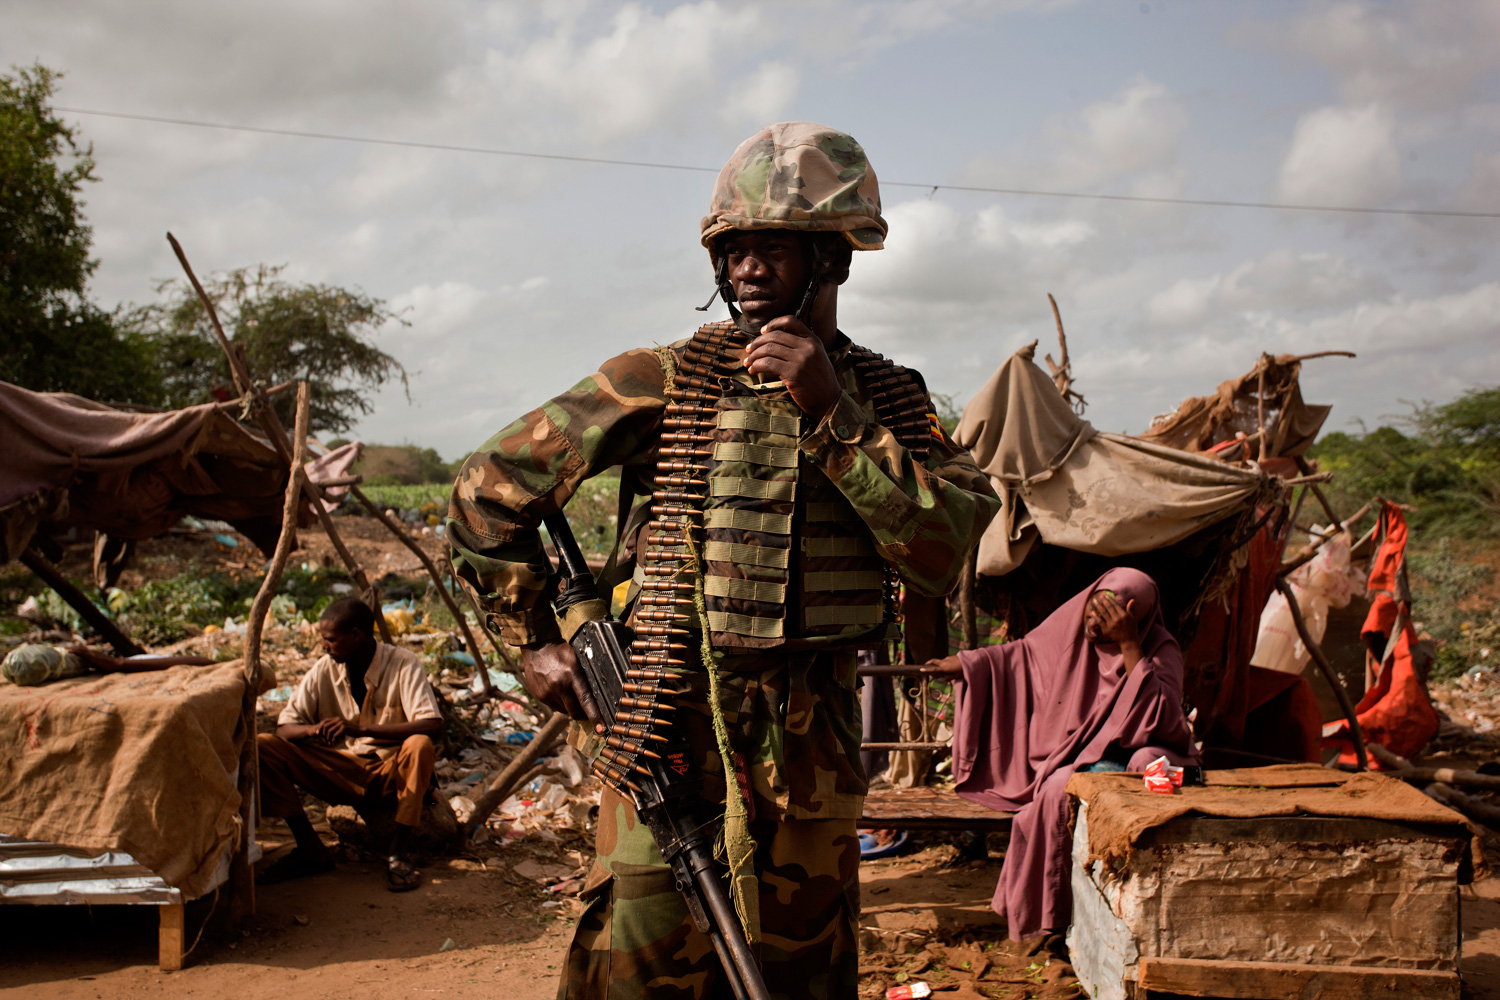 An African Union soldier in the Afgoye market where Somalis sell goods, including khat, which was previously banned under Al-Shabaab.